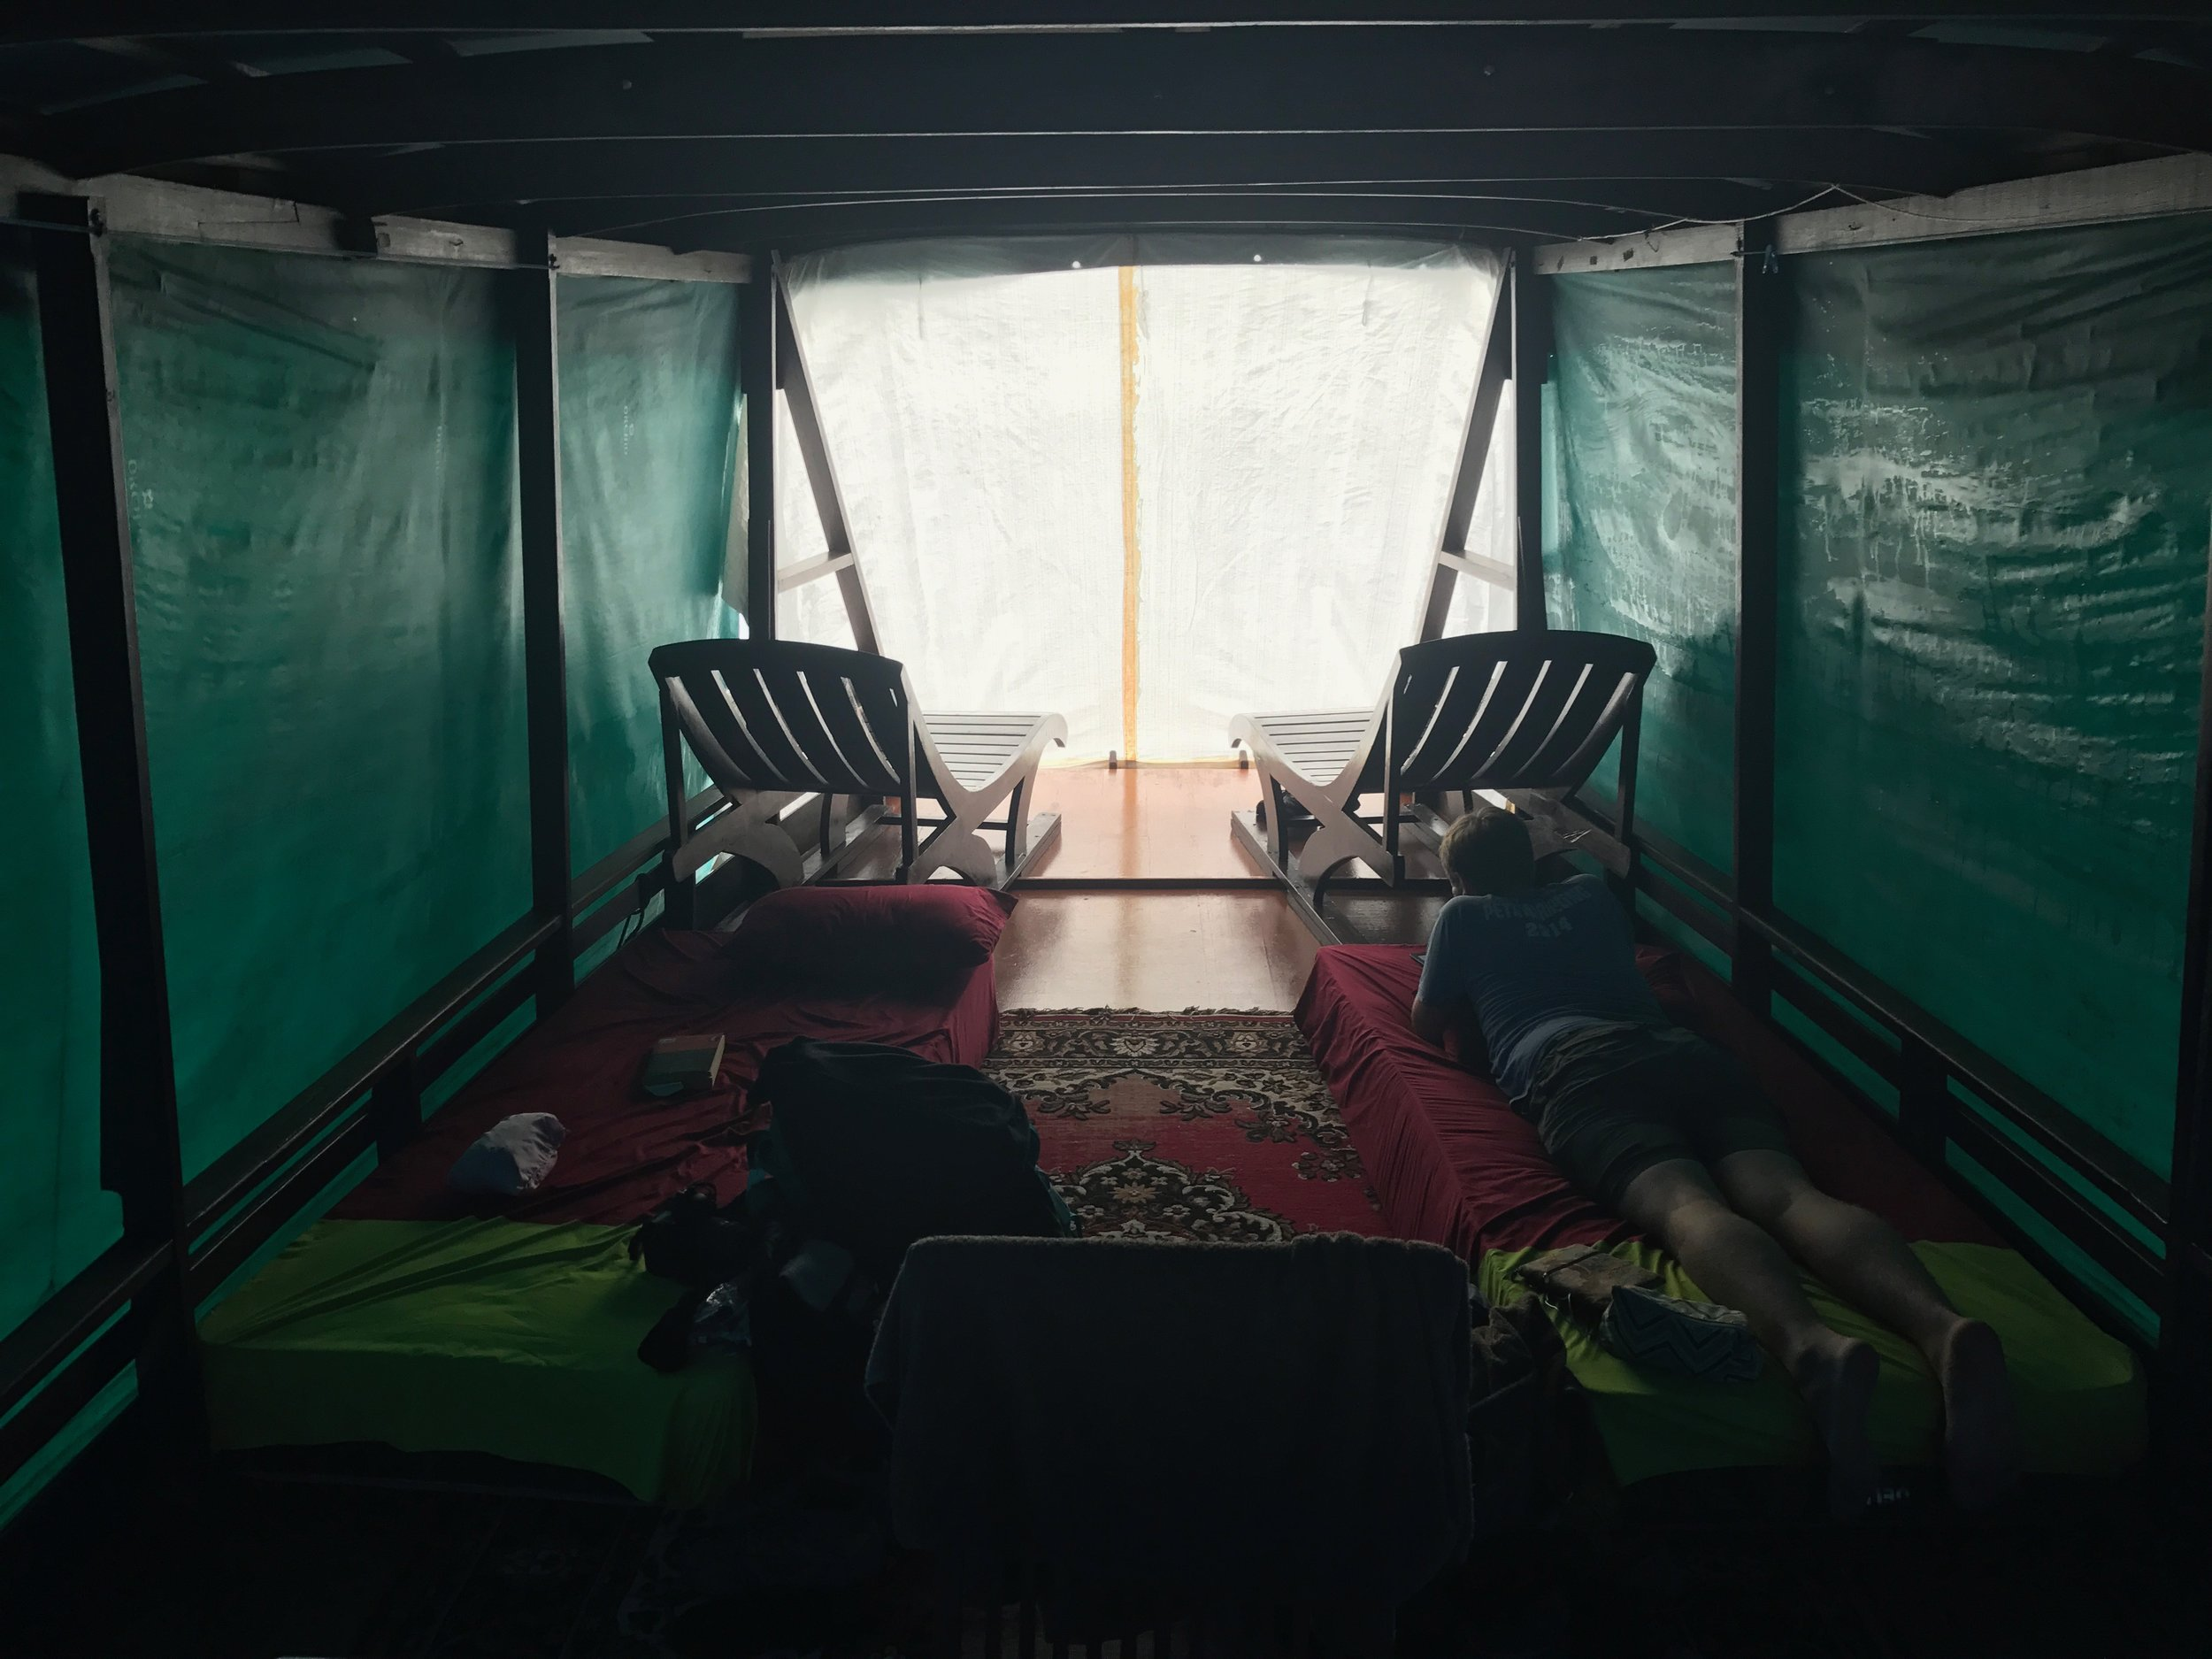 Inside our klotok during a downpour.